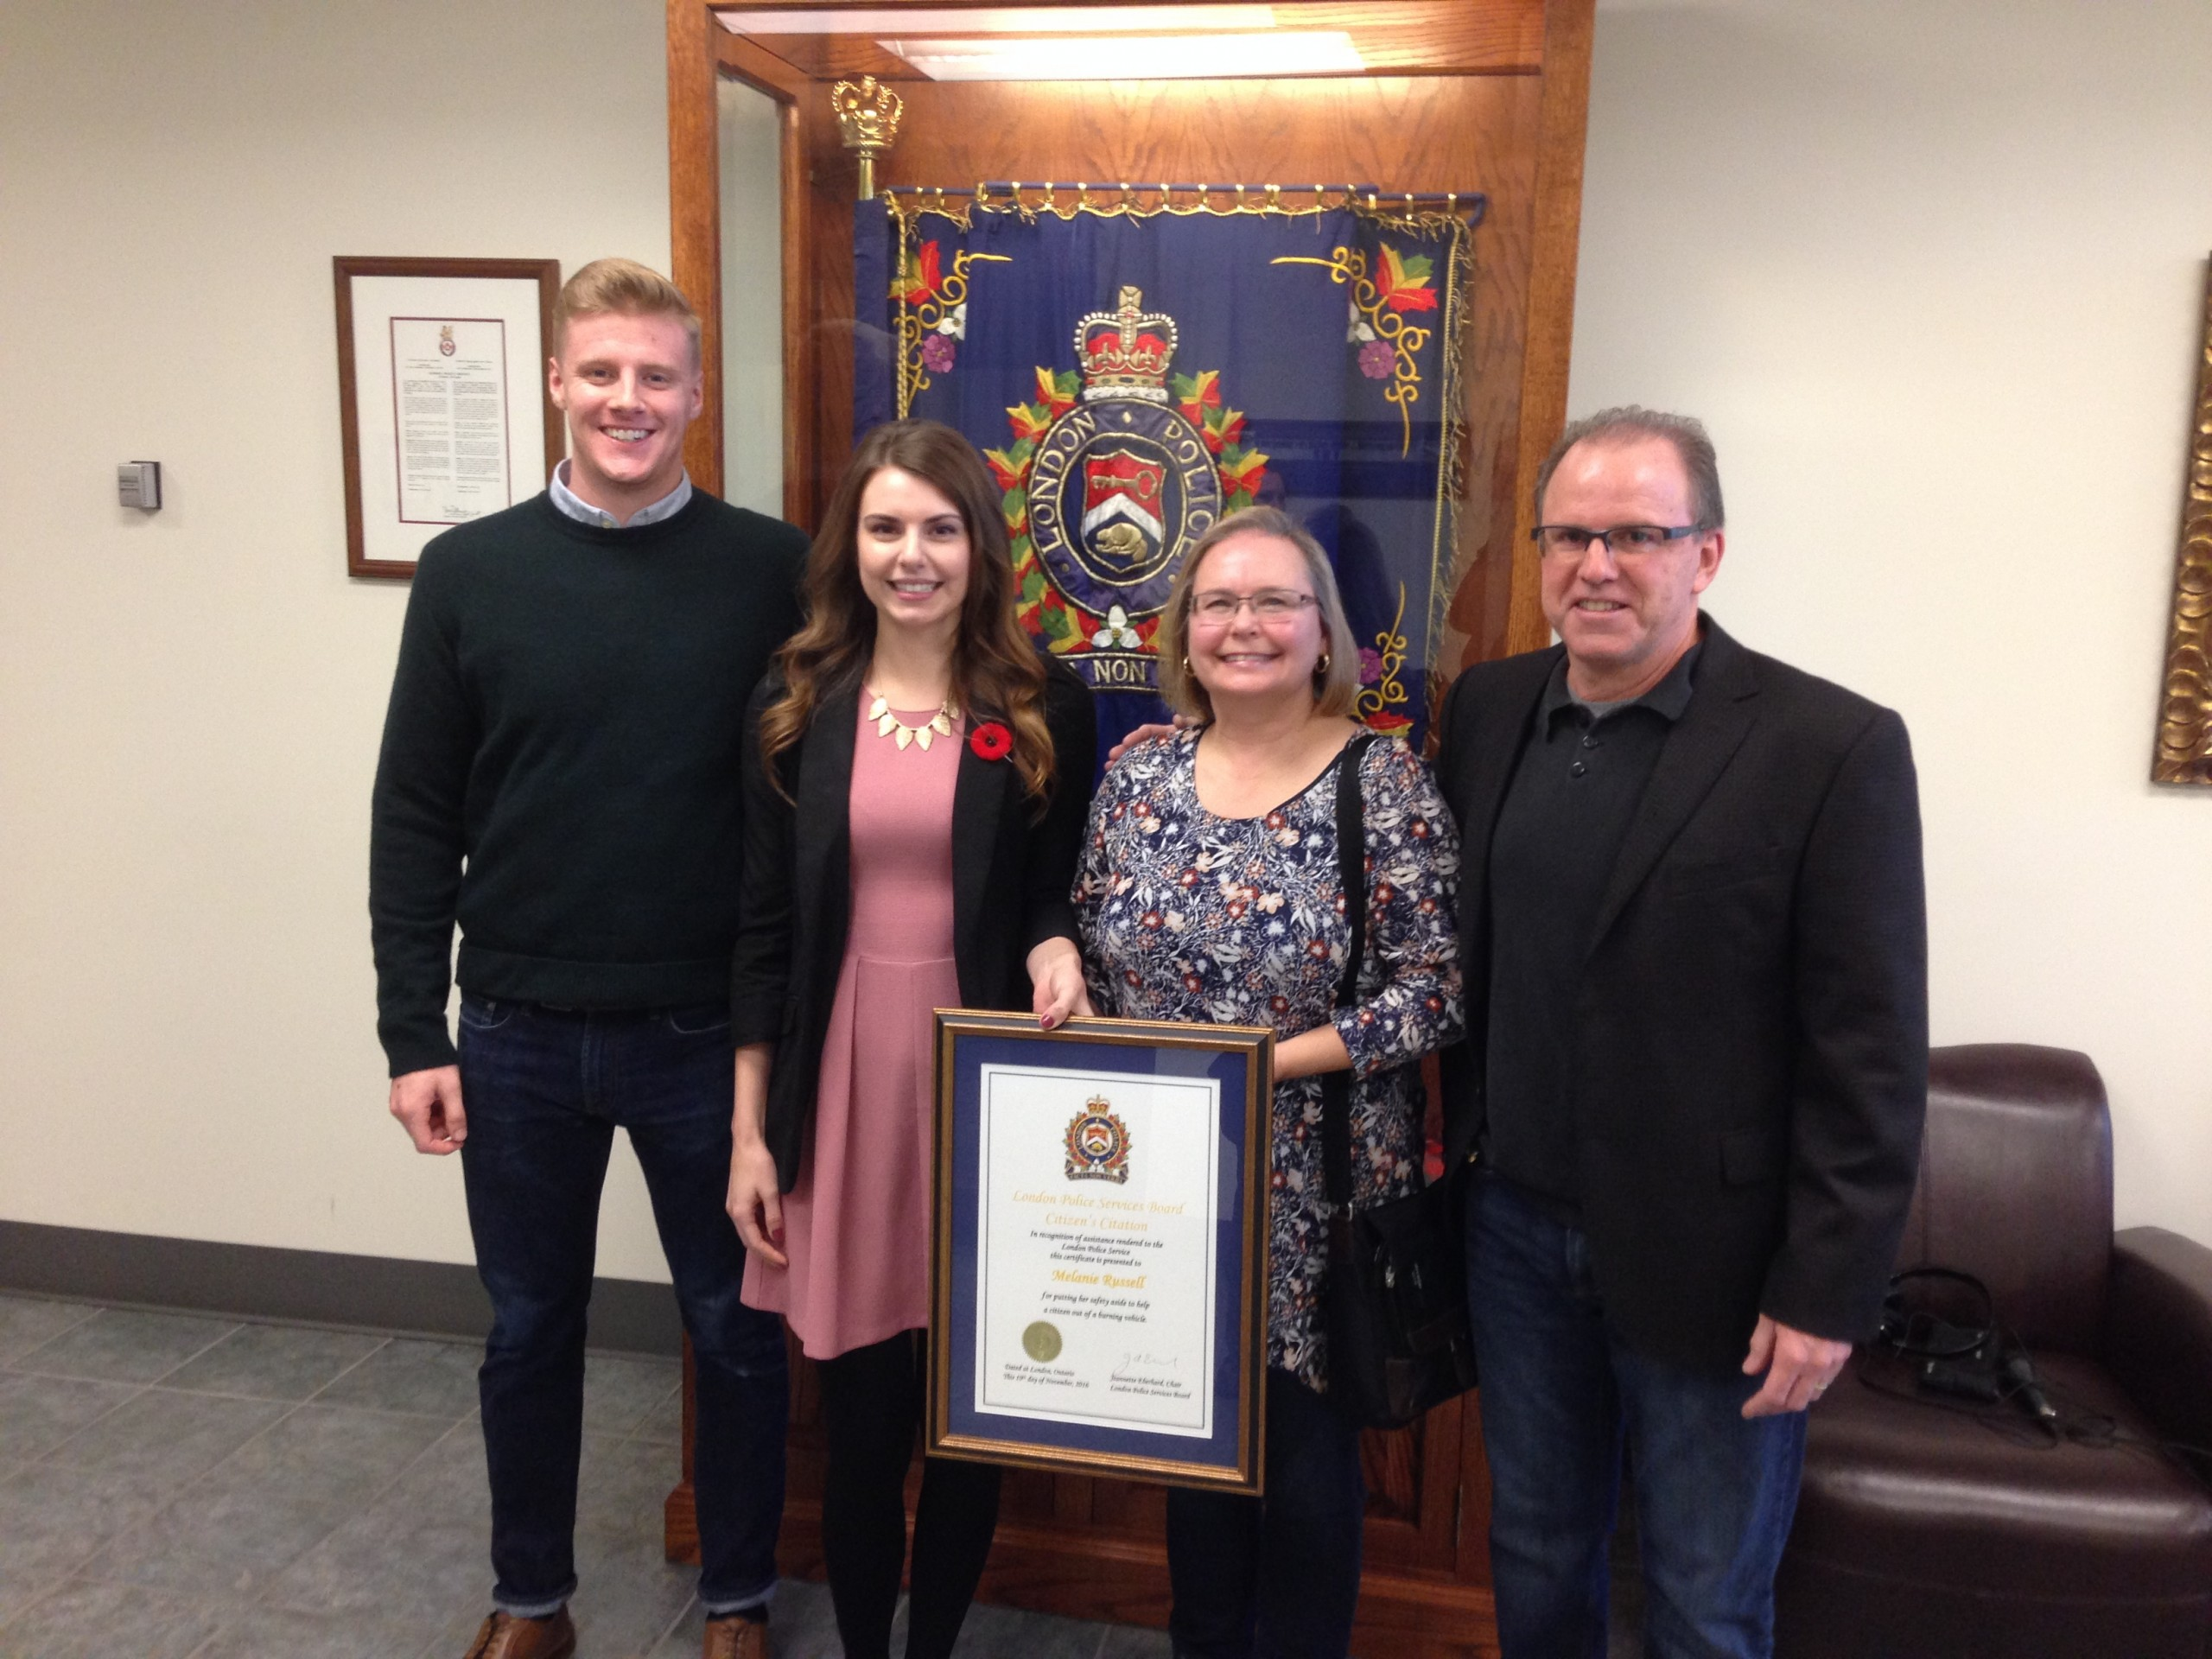 London Police award Western student with citizen citation for heroics in fiery crash